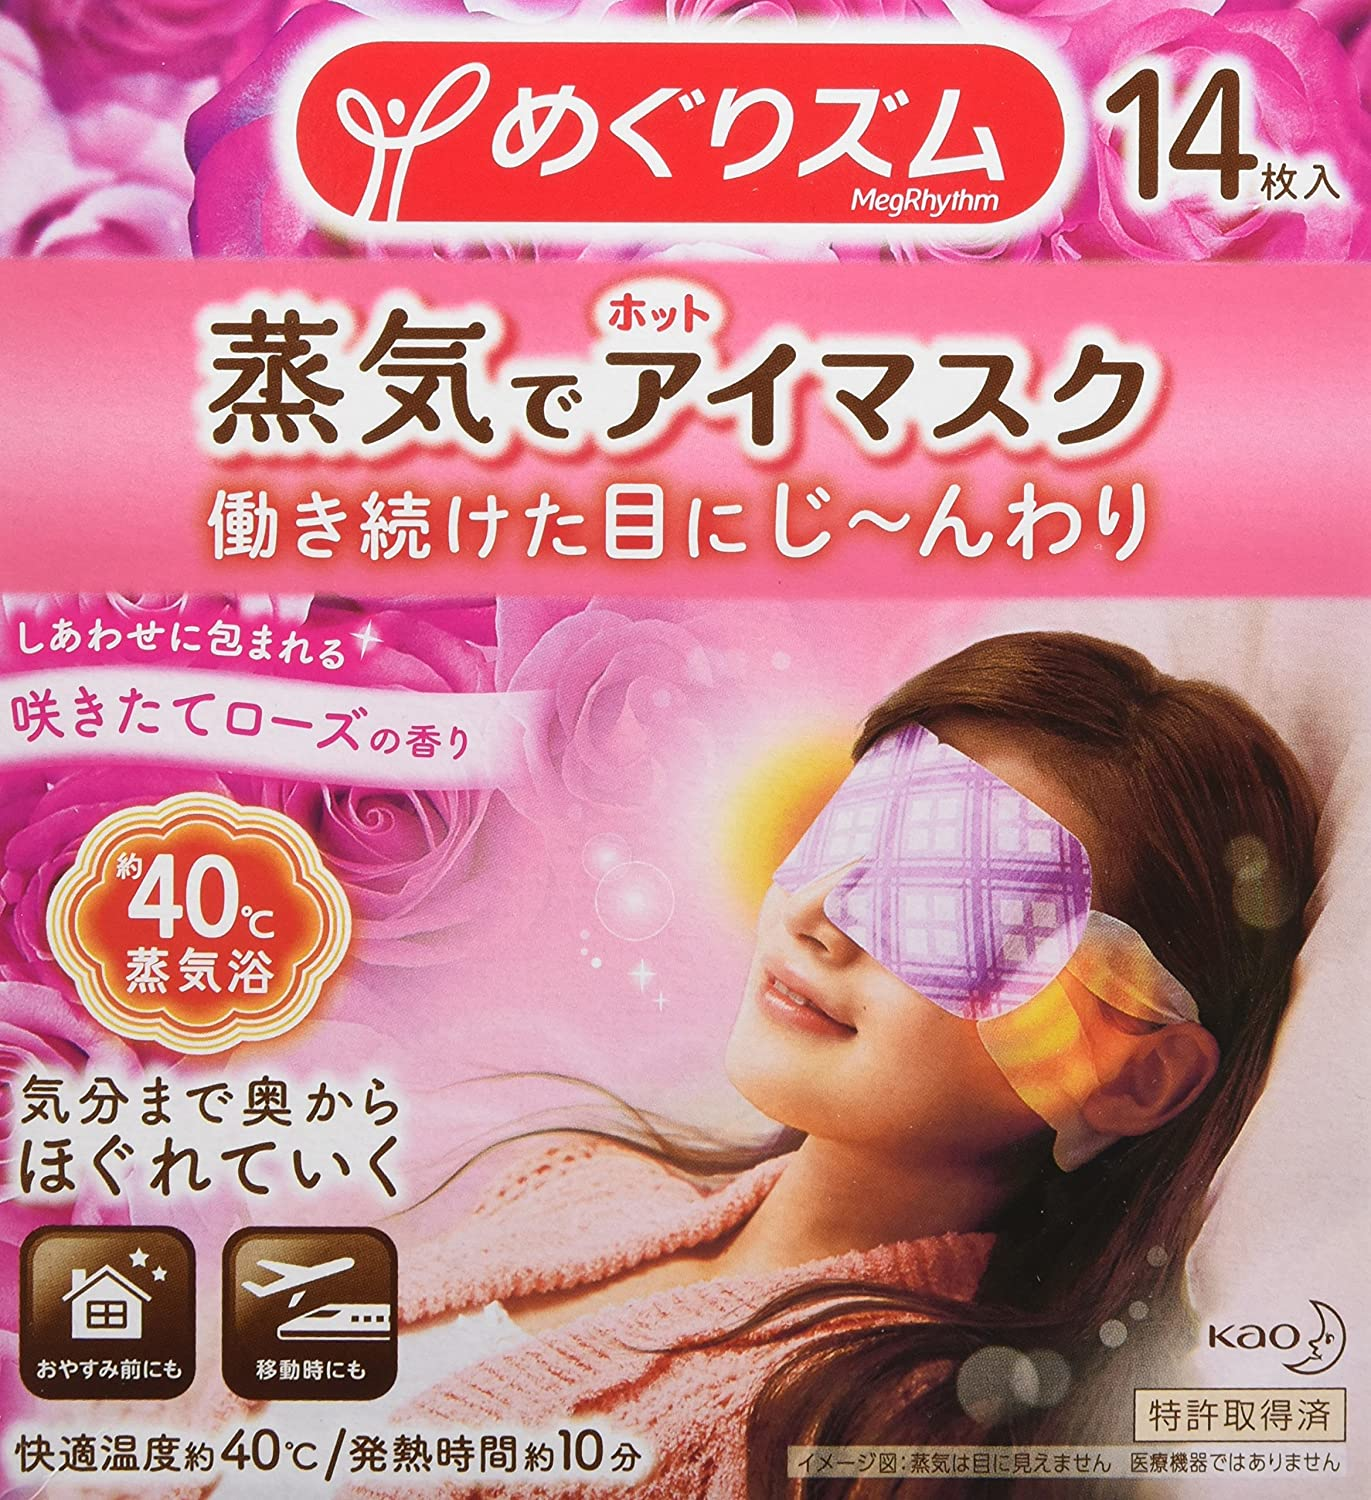 Kao MEGURISM Health Care Steam Warm Eye Mask, Parallel Import Product, Rose 14 Sheets x 2 Pack